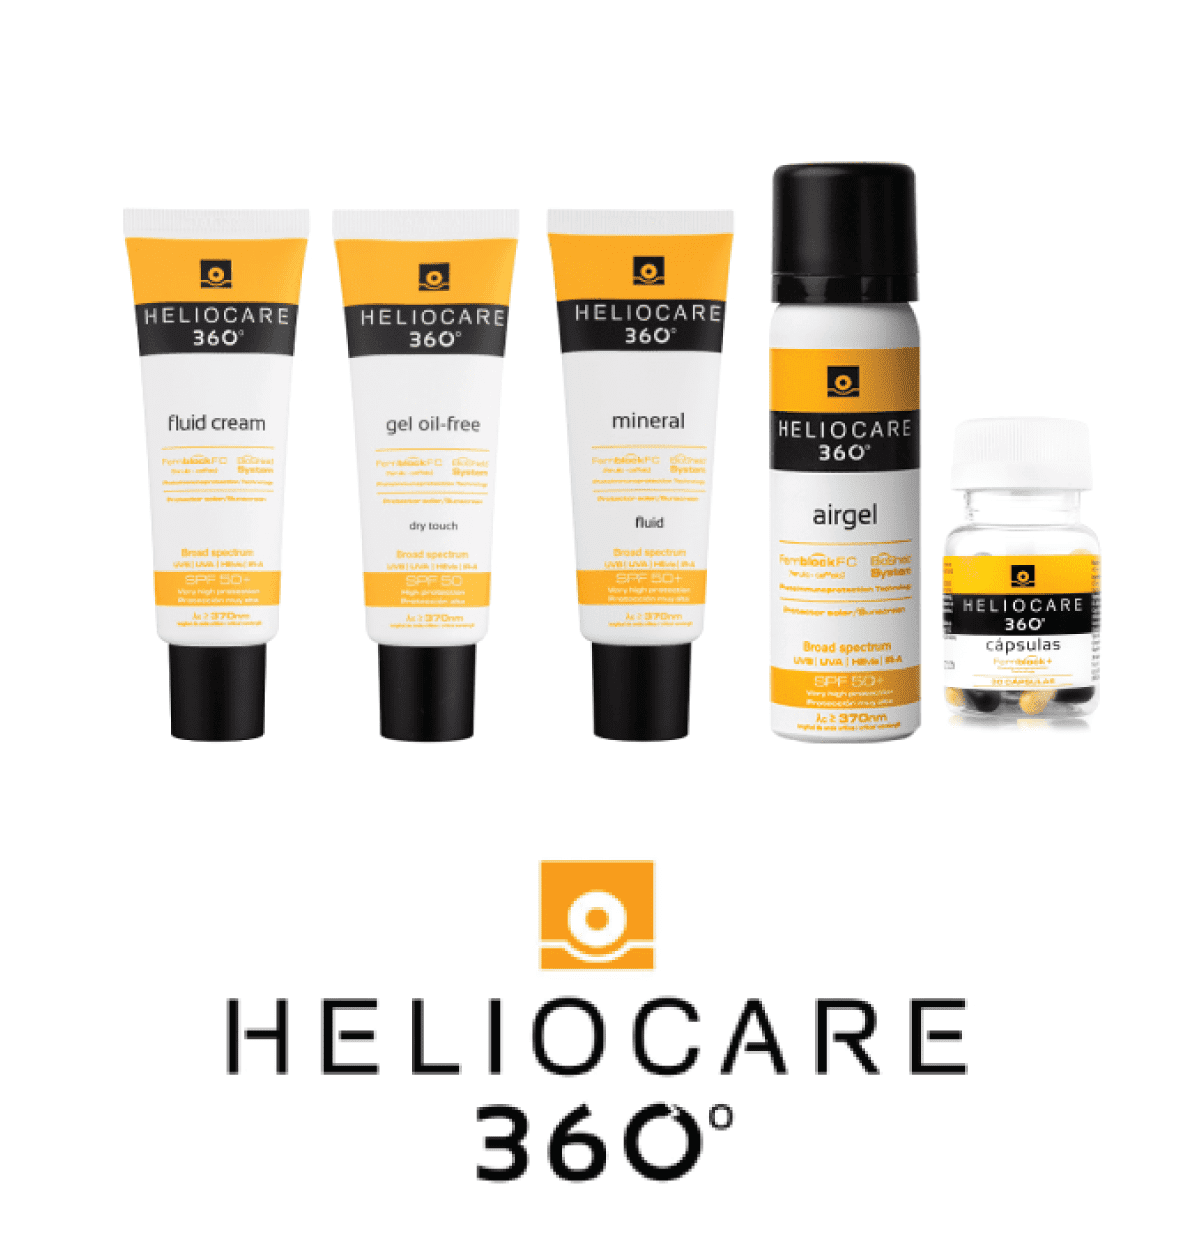 Heliocare - Acne Treatment Product